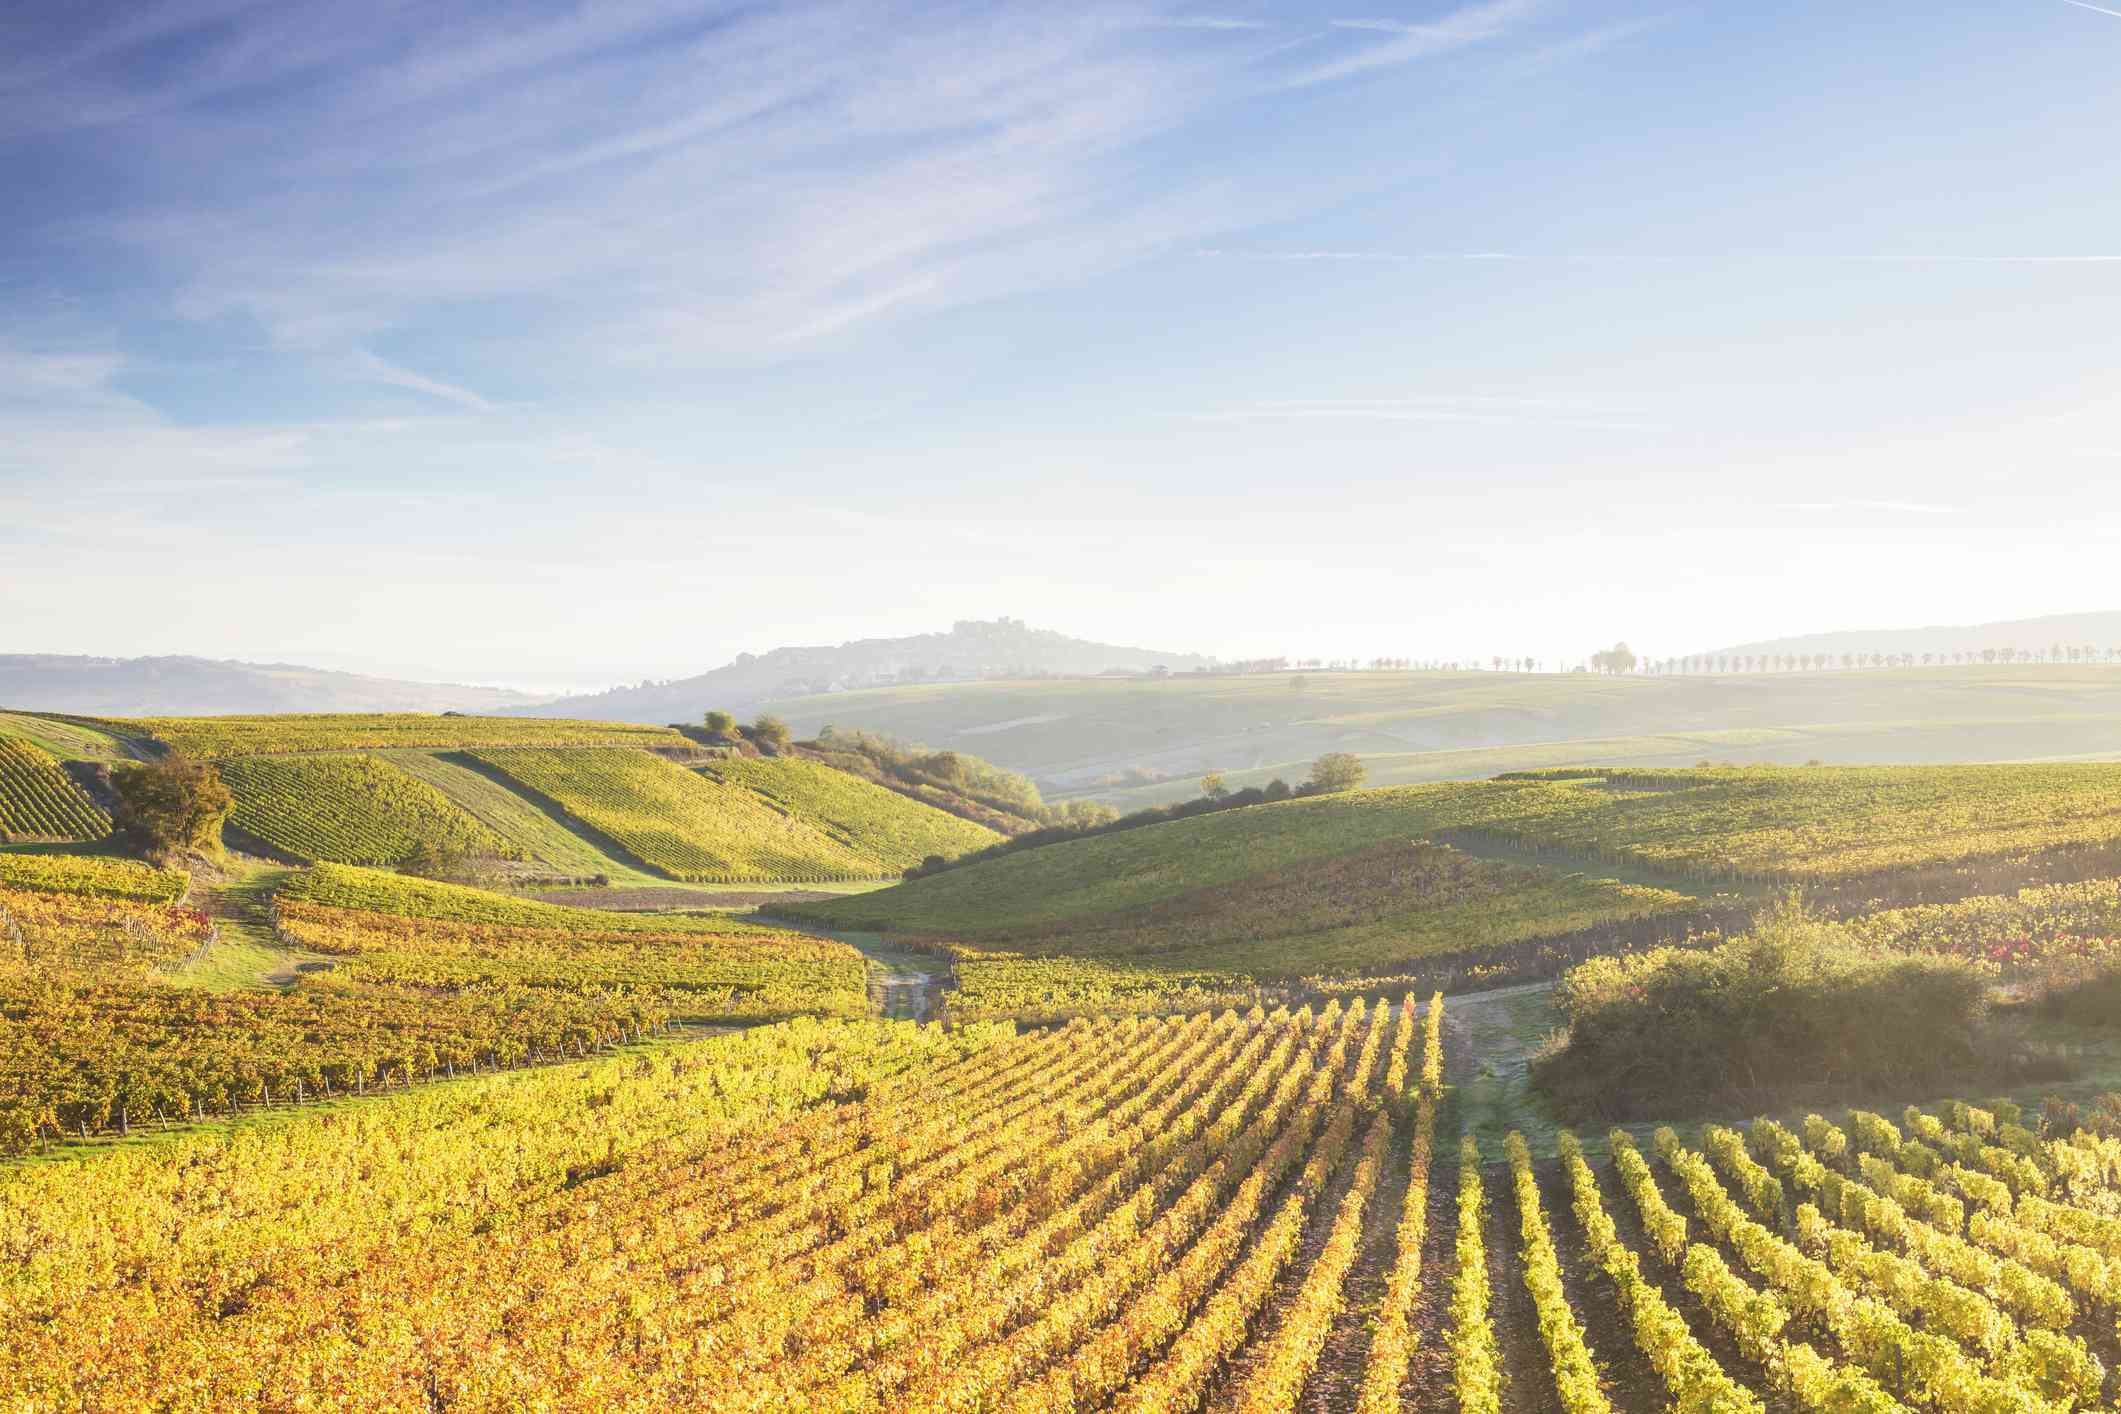 The vineyards of Sancerre during autumn in the Loire Valley, France.